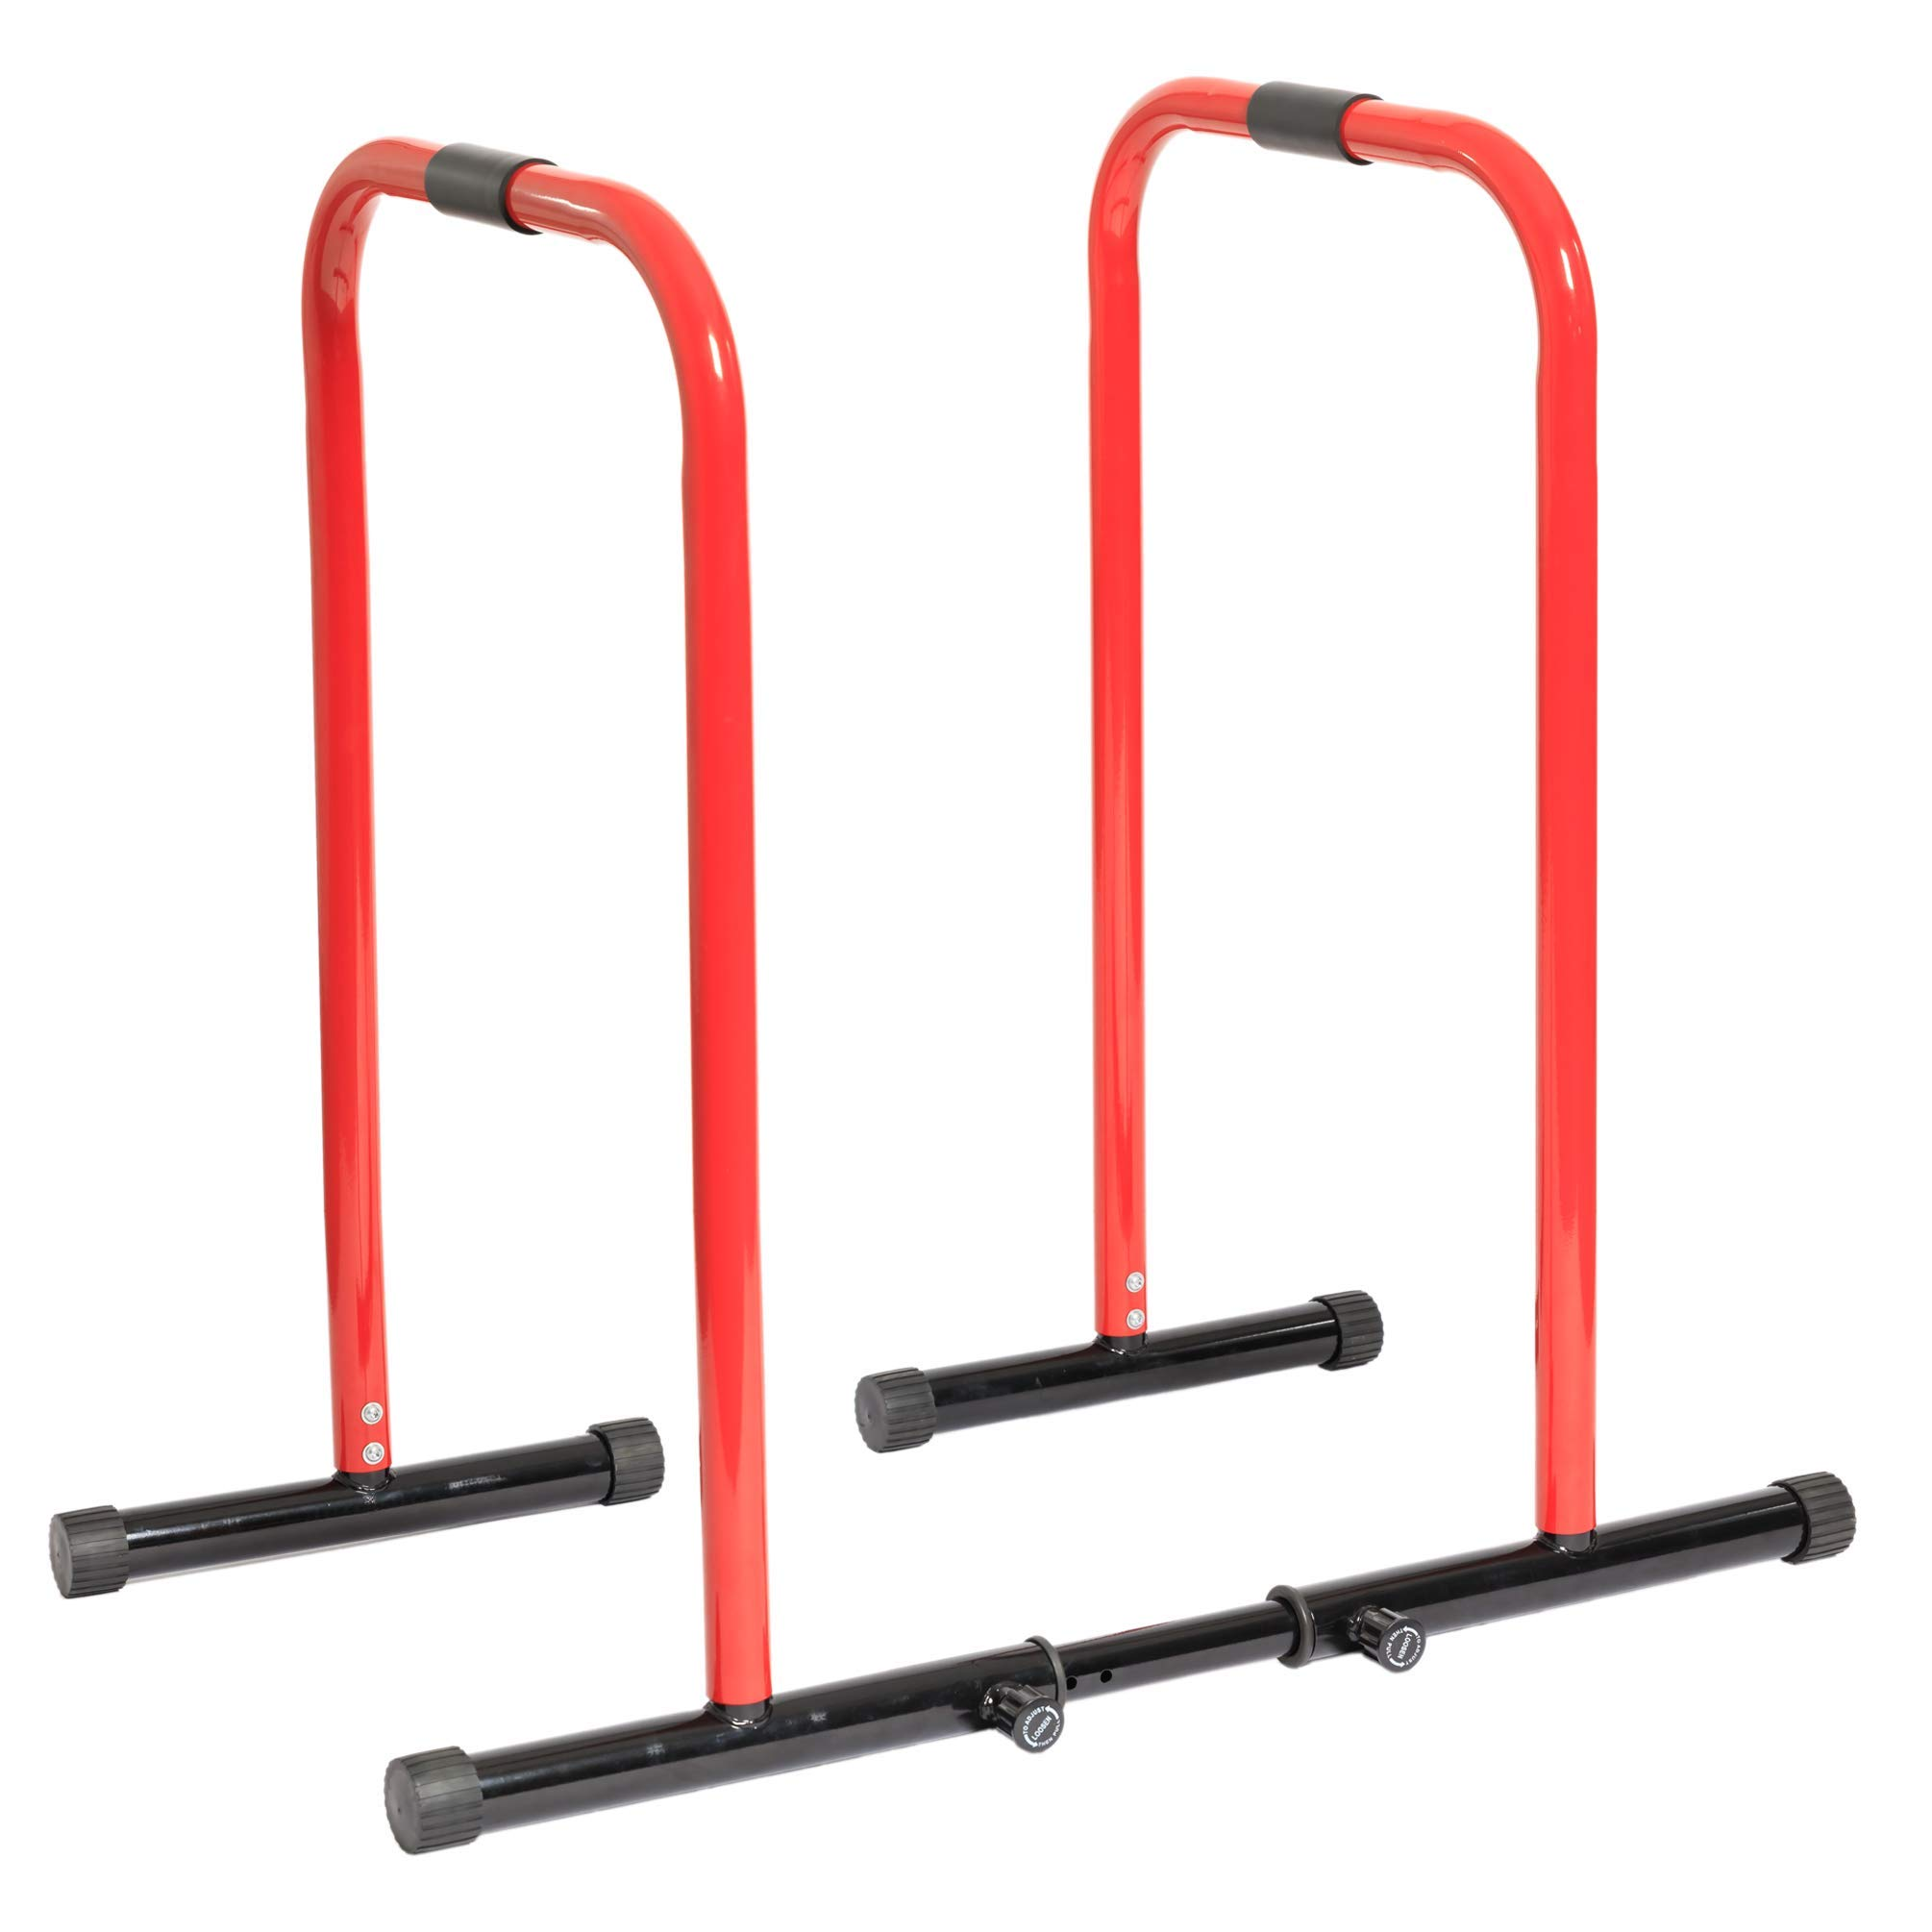 GoBeast Dip Stand with Stability Bar, Adjustable Height and Width, Easy Release Locking Pin, Max User Weight 330lbs / 150kg